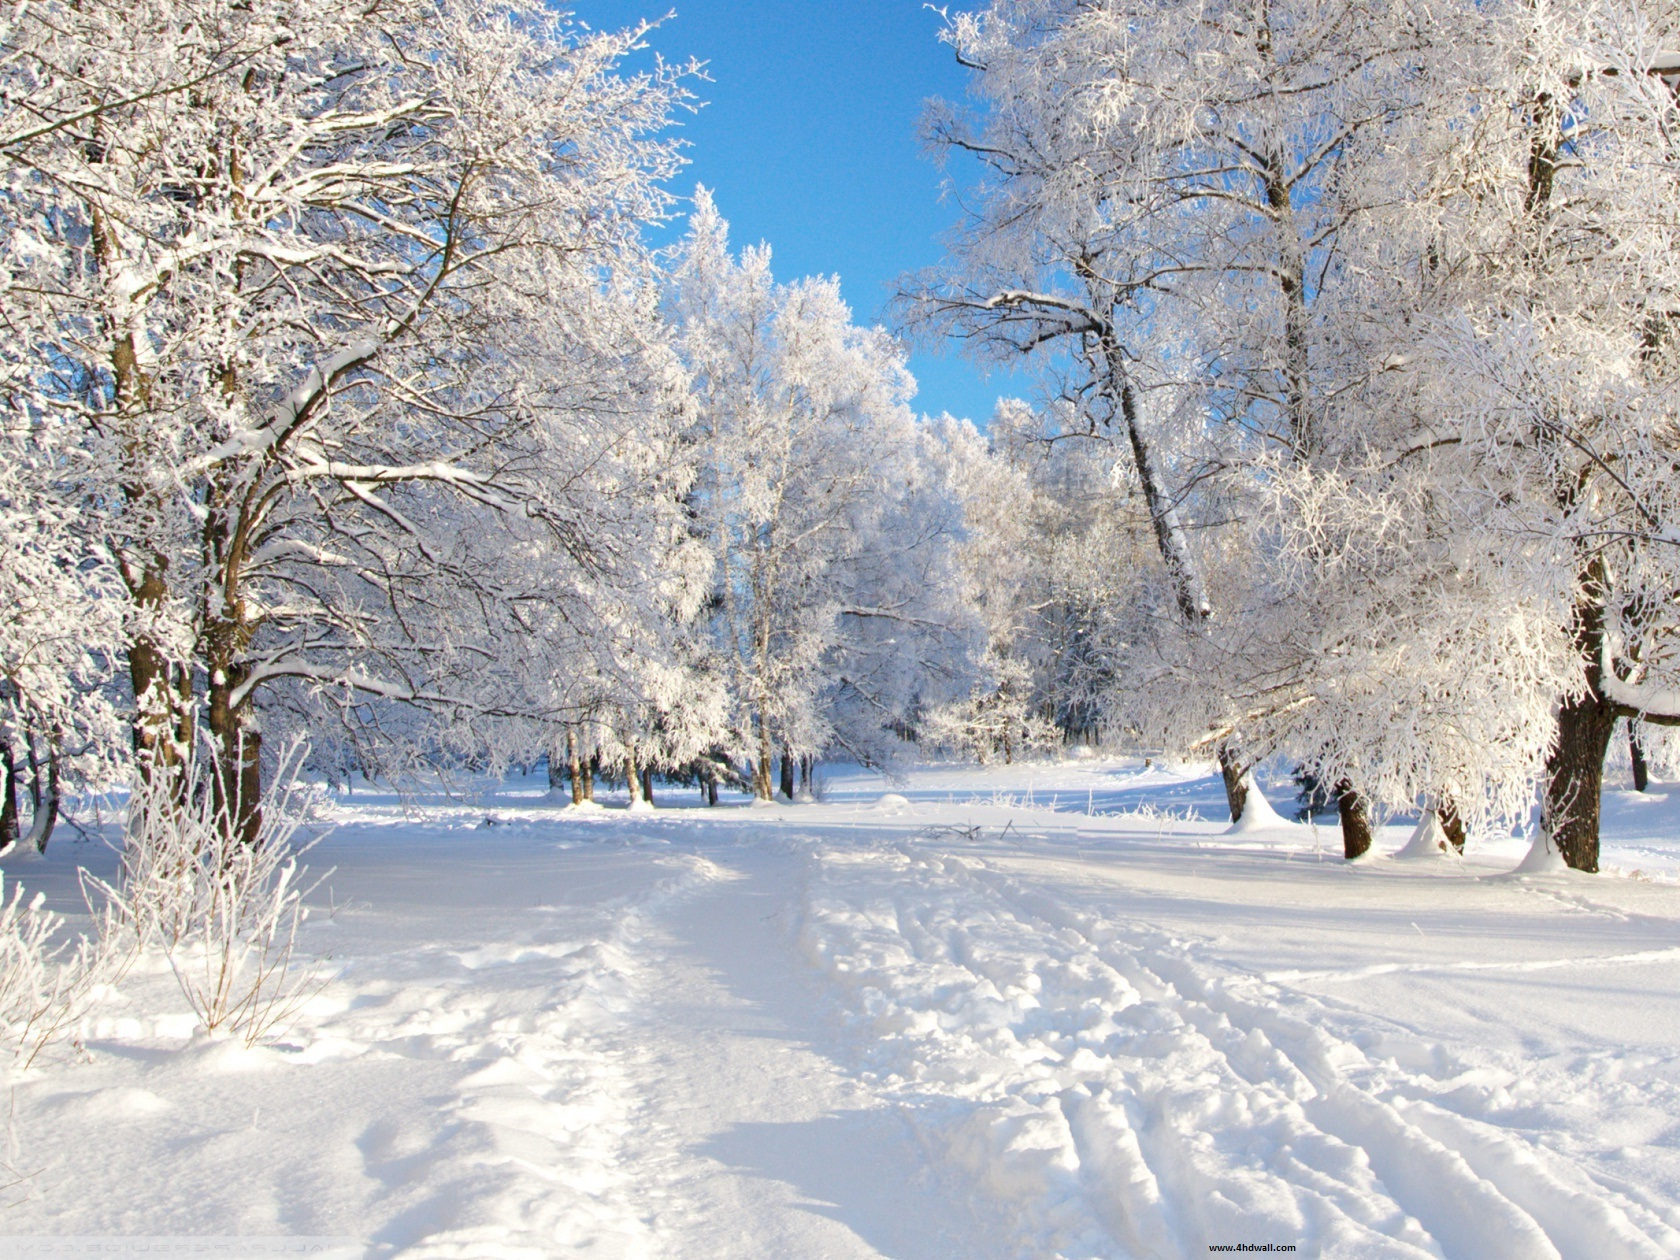 Download Free High Definition Winter Wallpapers 407